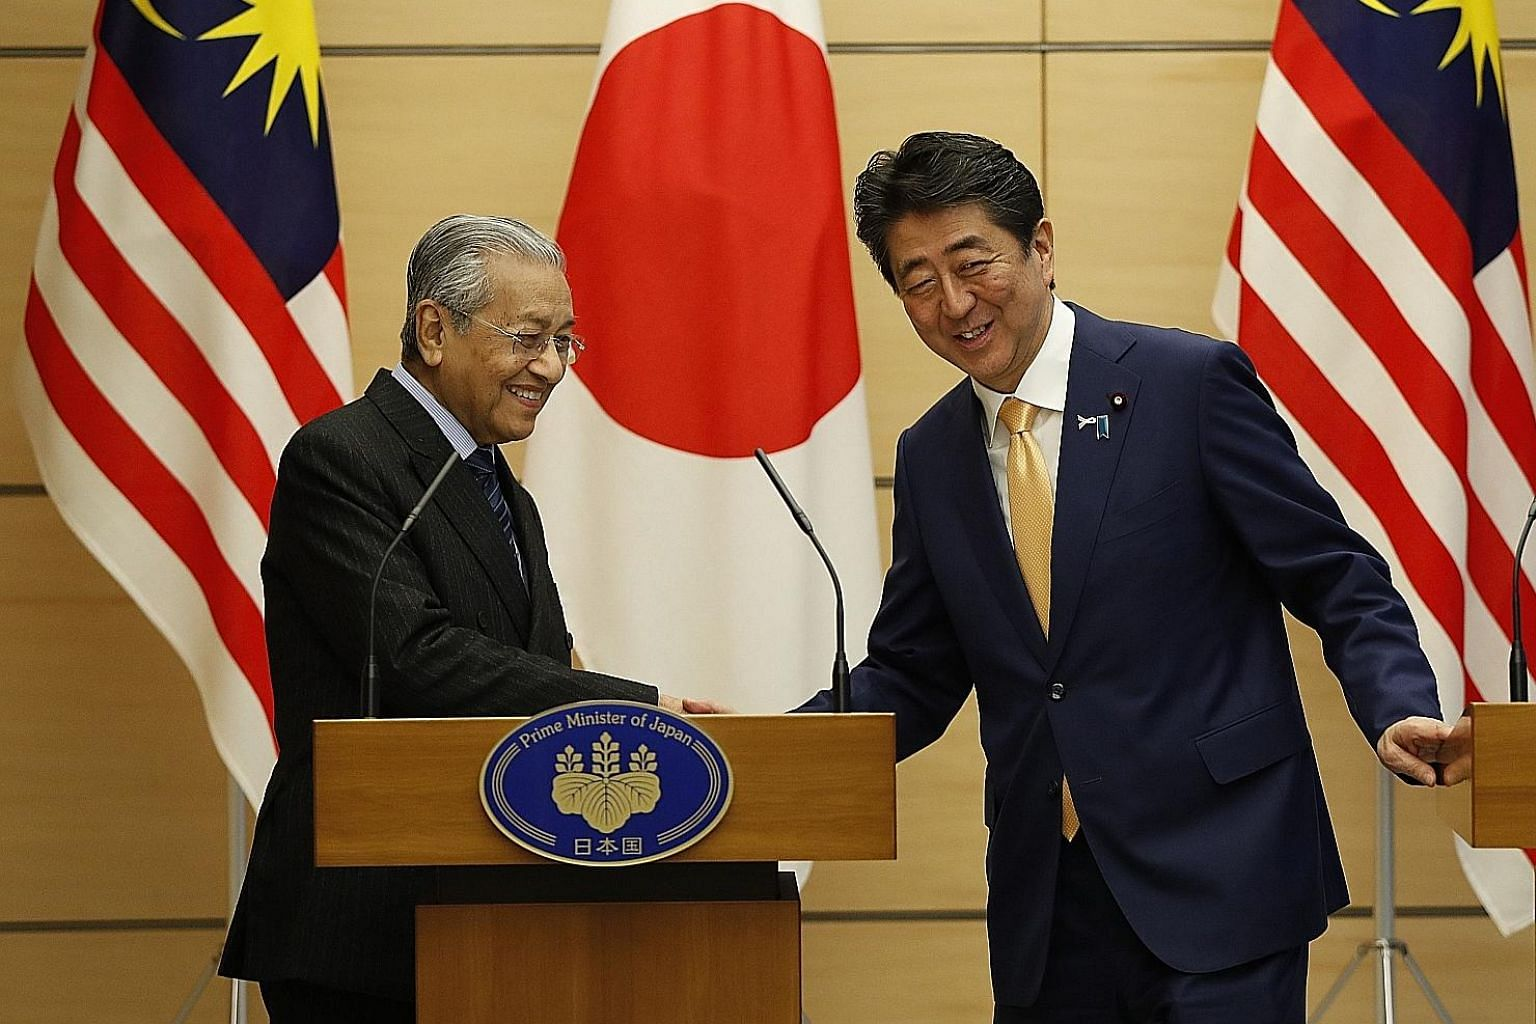 Malaysian Prime Minister Mahathir Mohamad exchanging greetings with Japanese Premier Shinzo Abe at the end of their joint news conference at Mr Abe's official residence in Tokyo yesterday.